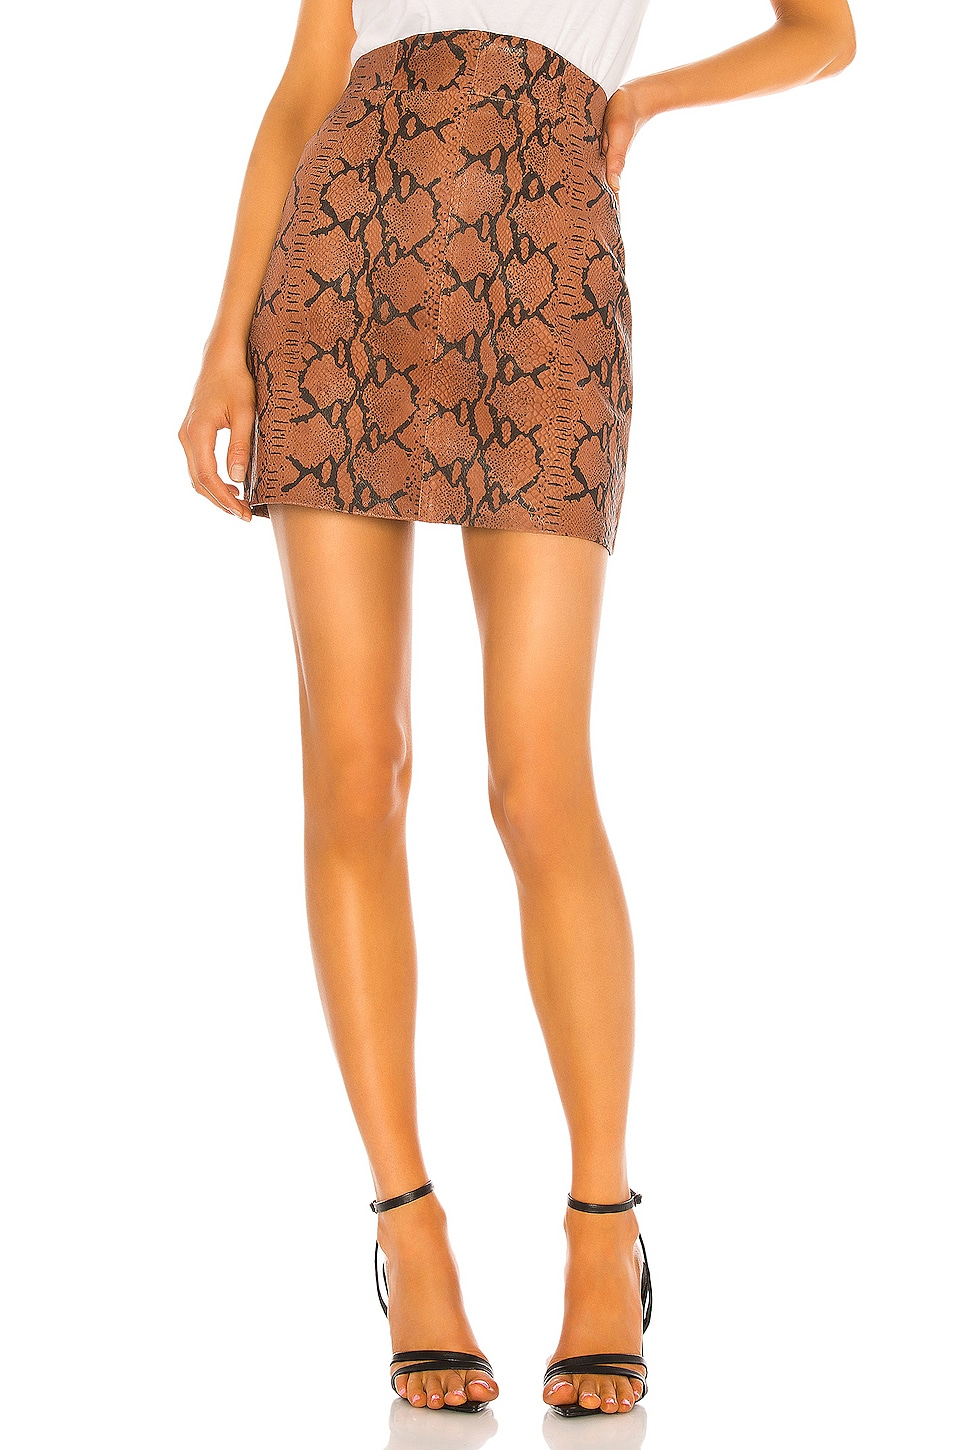 Camila Coelho Luana Leather Mini Skirt in Brown Snake